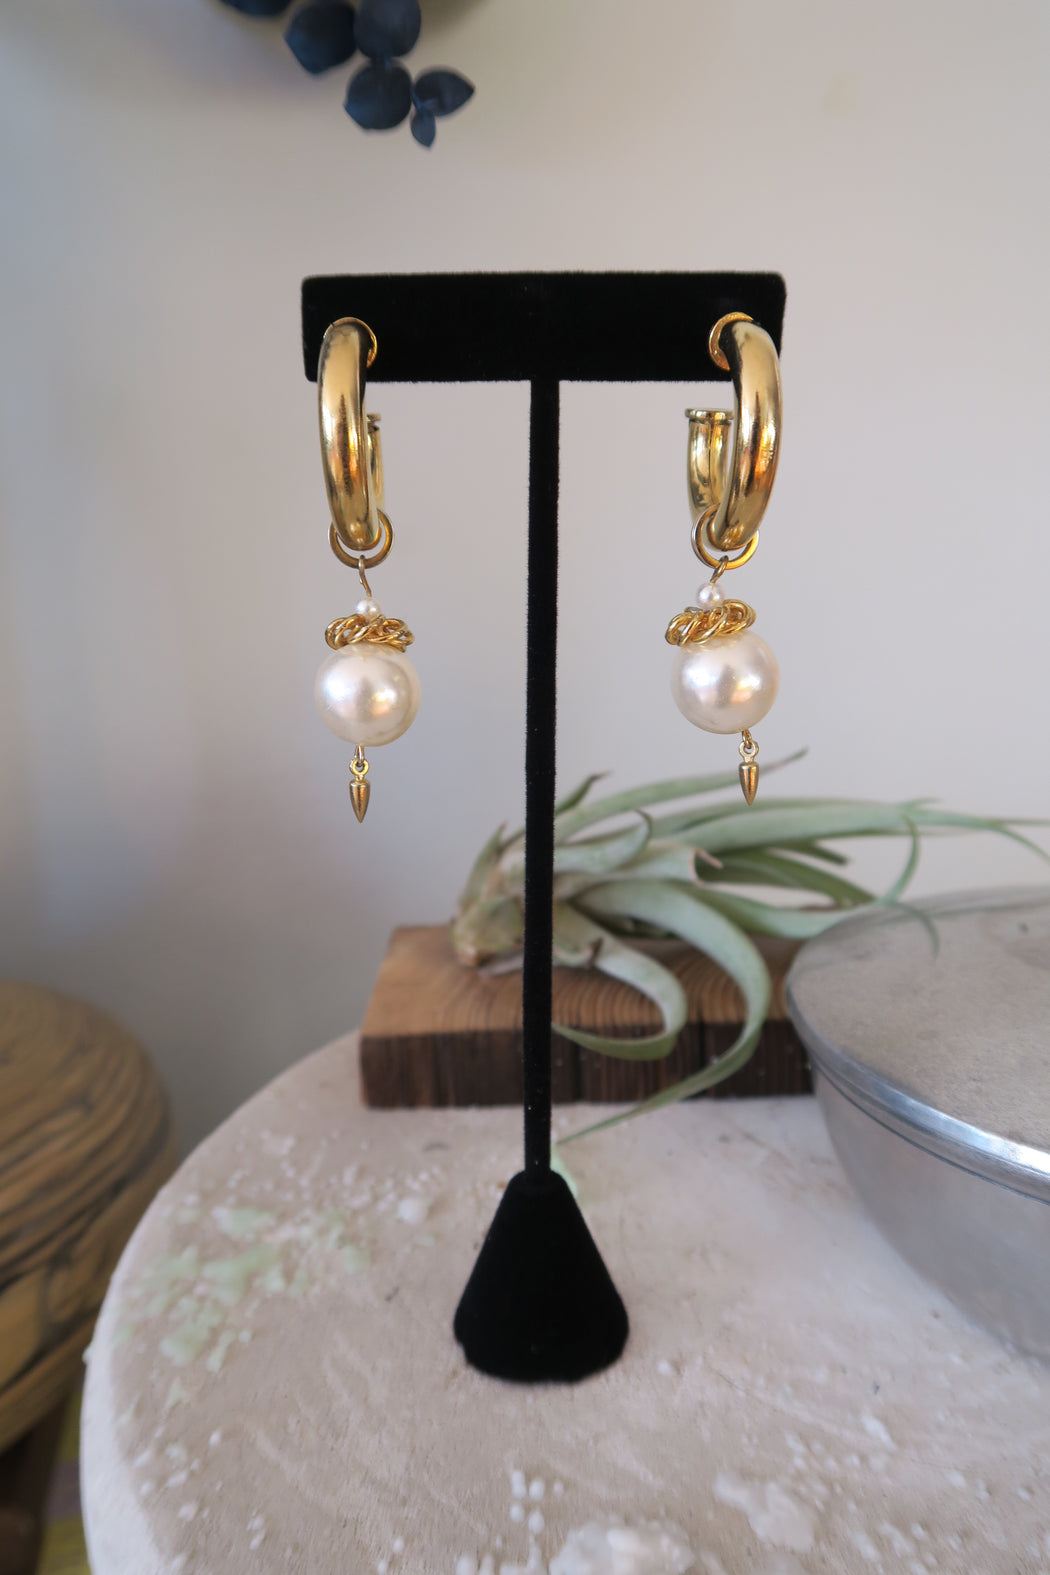 Gold Hoop Earrings with Dangling Oversized Pearl